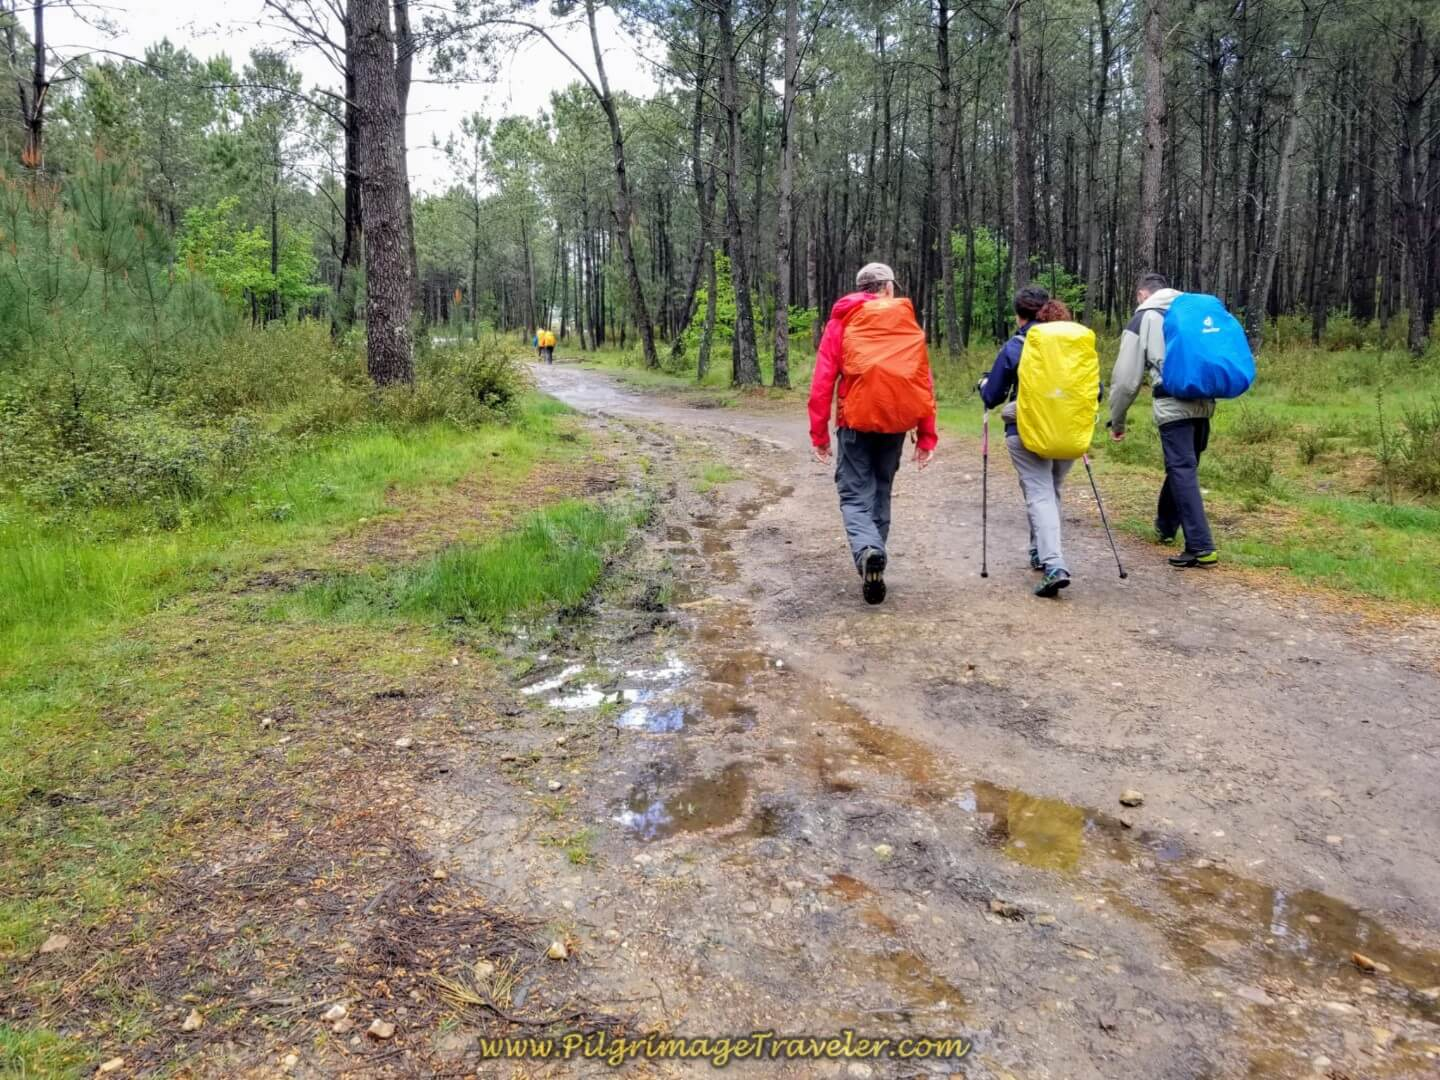 Rich, Miriam and Borut on day twenty on the central route of the Portuguese Camino